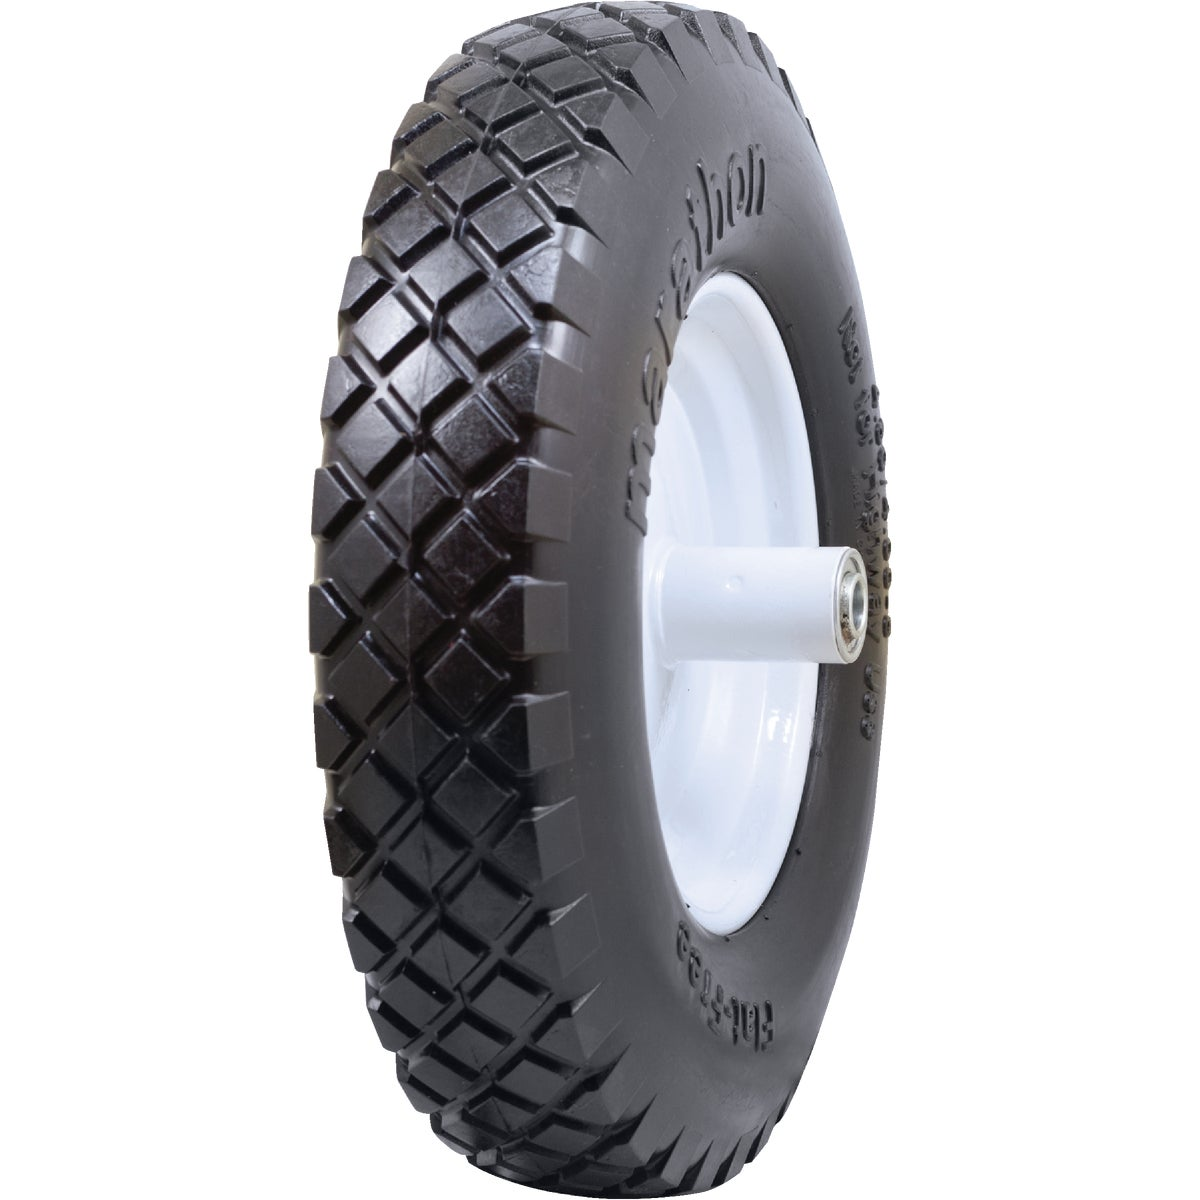 WHEELBARROW TIRE - 00047 by Marathon Industries